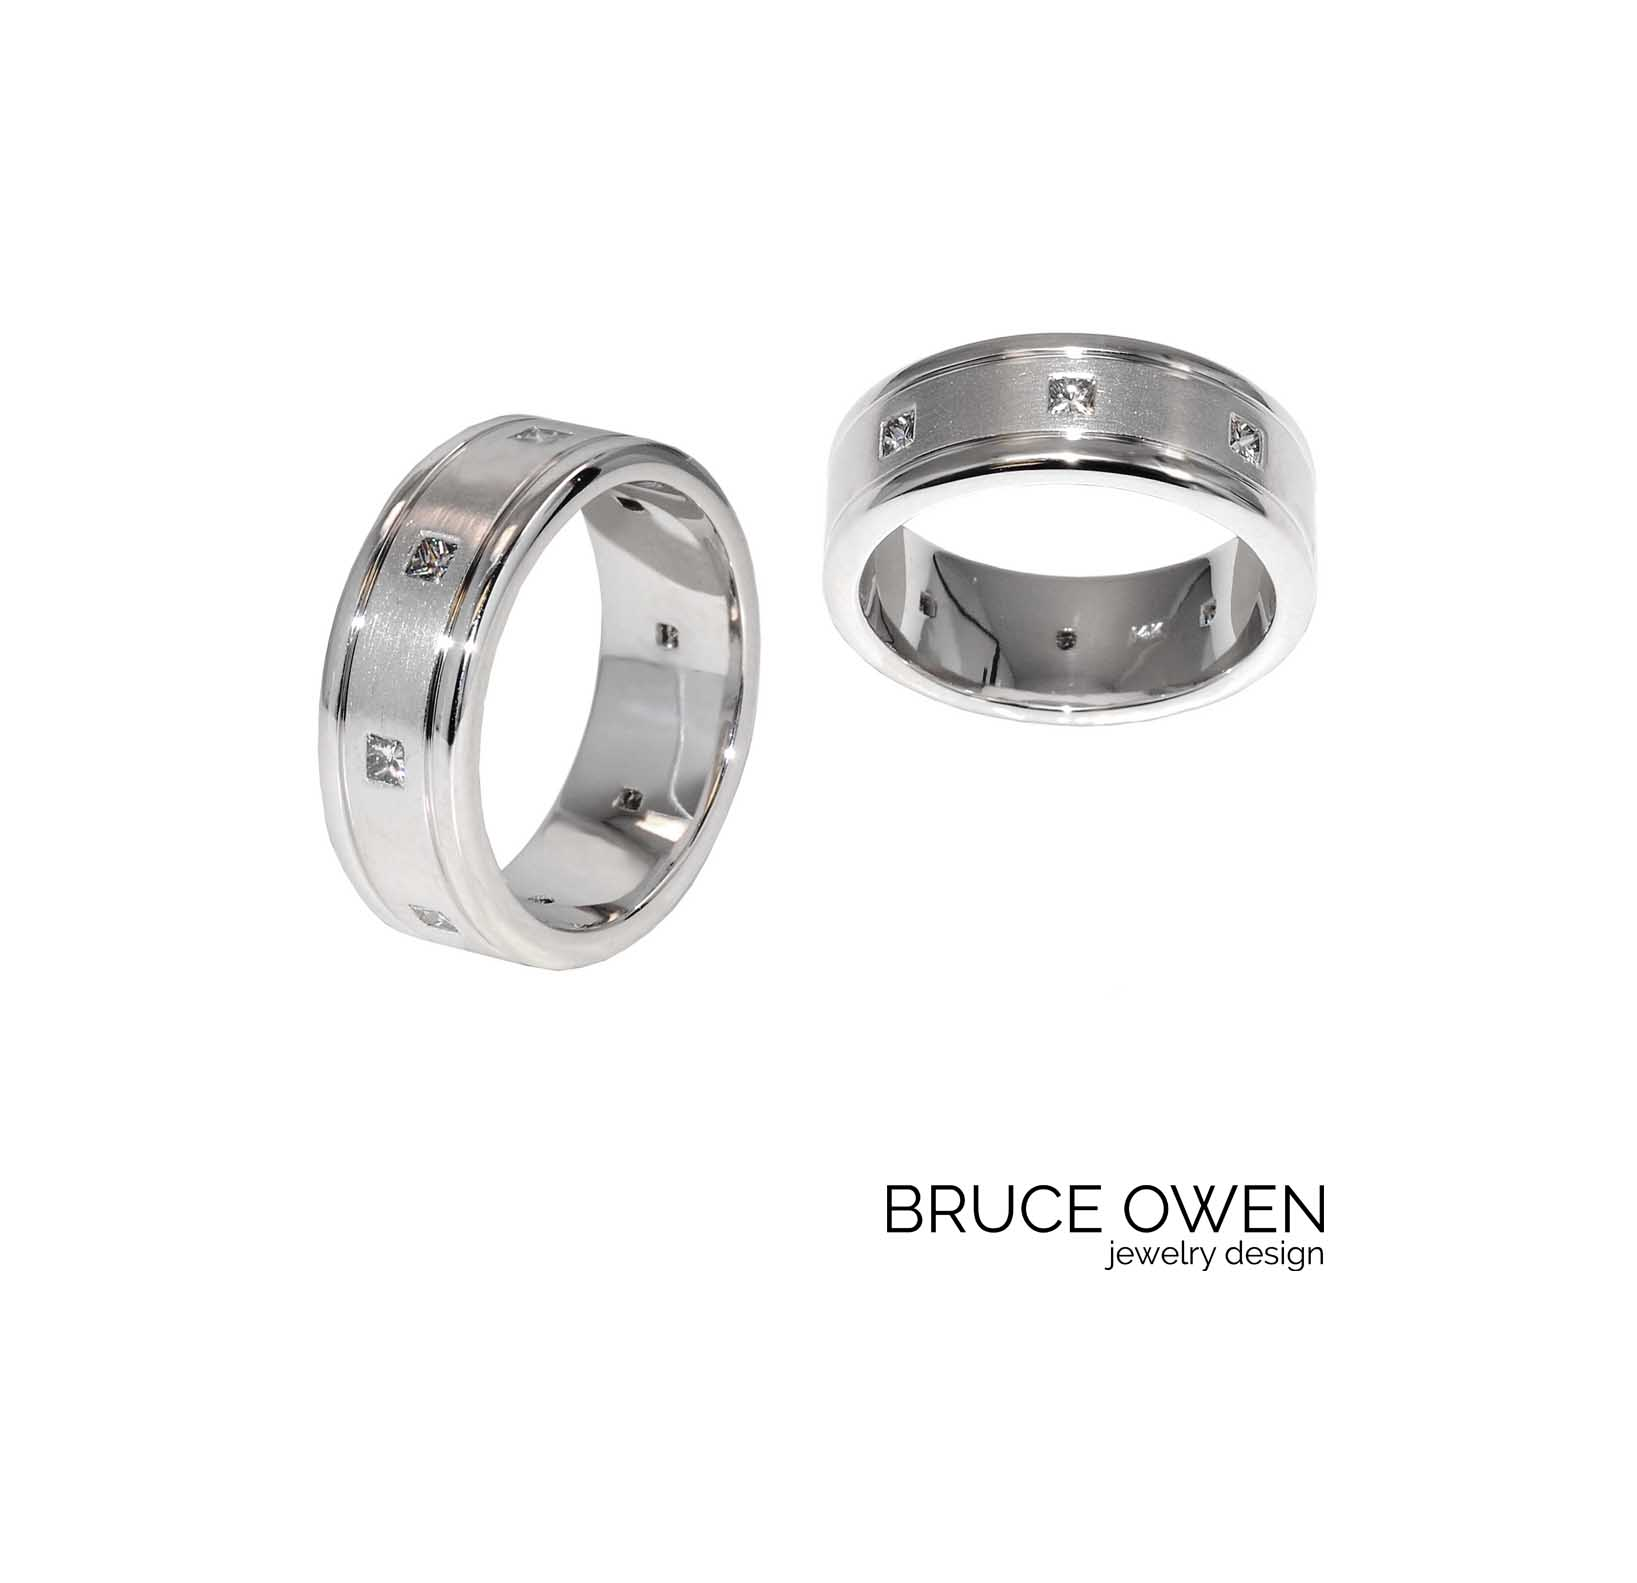 Gents - Bruce Owen Jewelry & Design